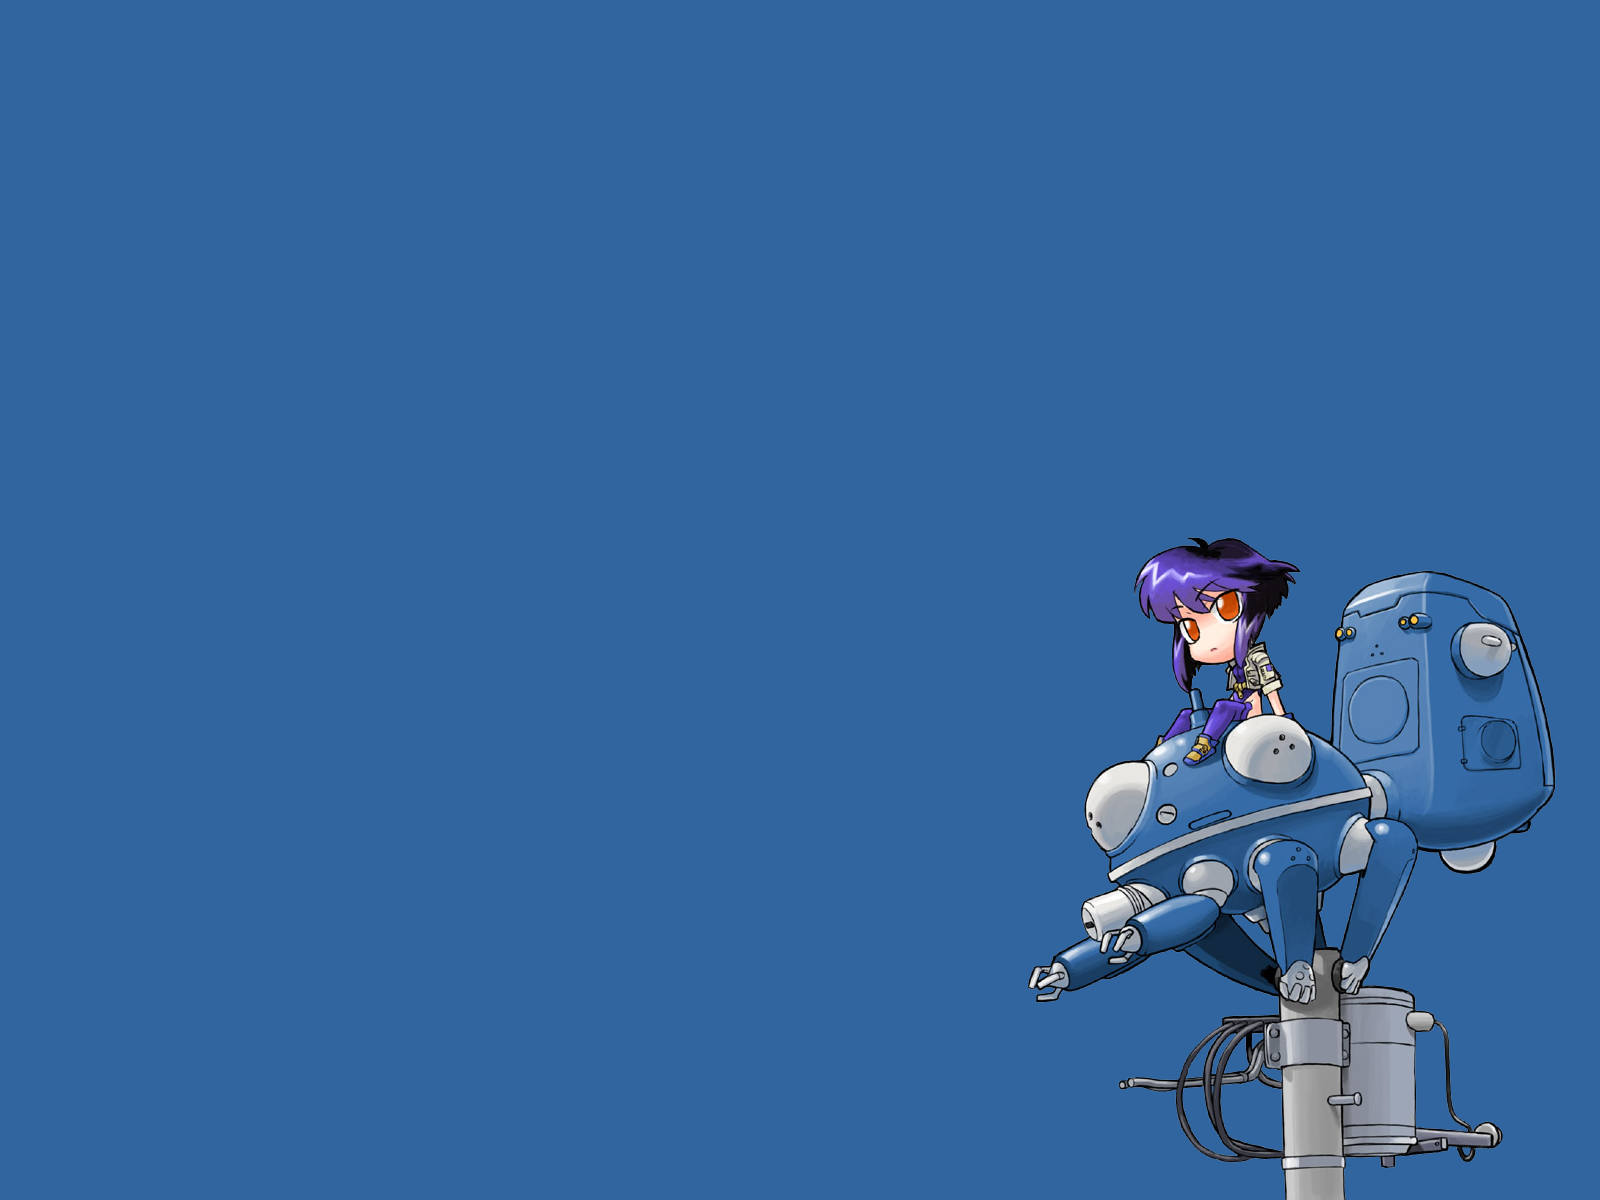 ghost in the shell wallpaper | 1600x1200 | 38403 | wallpaperup